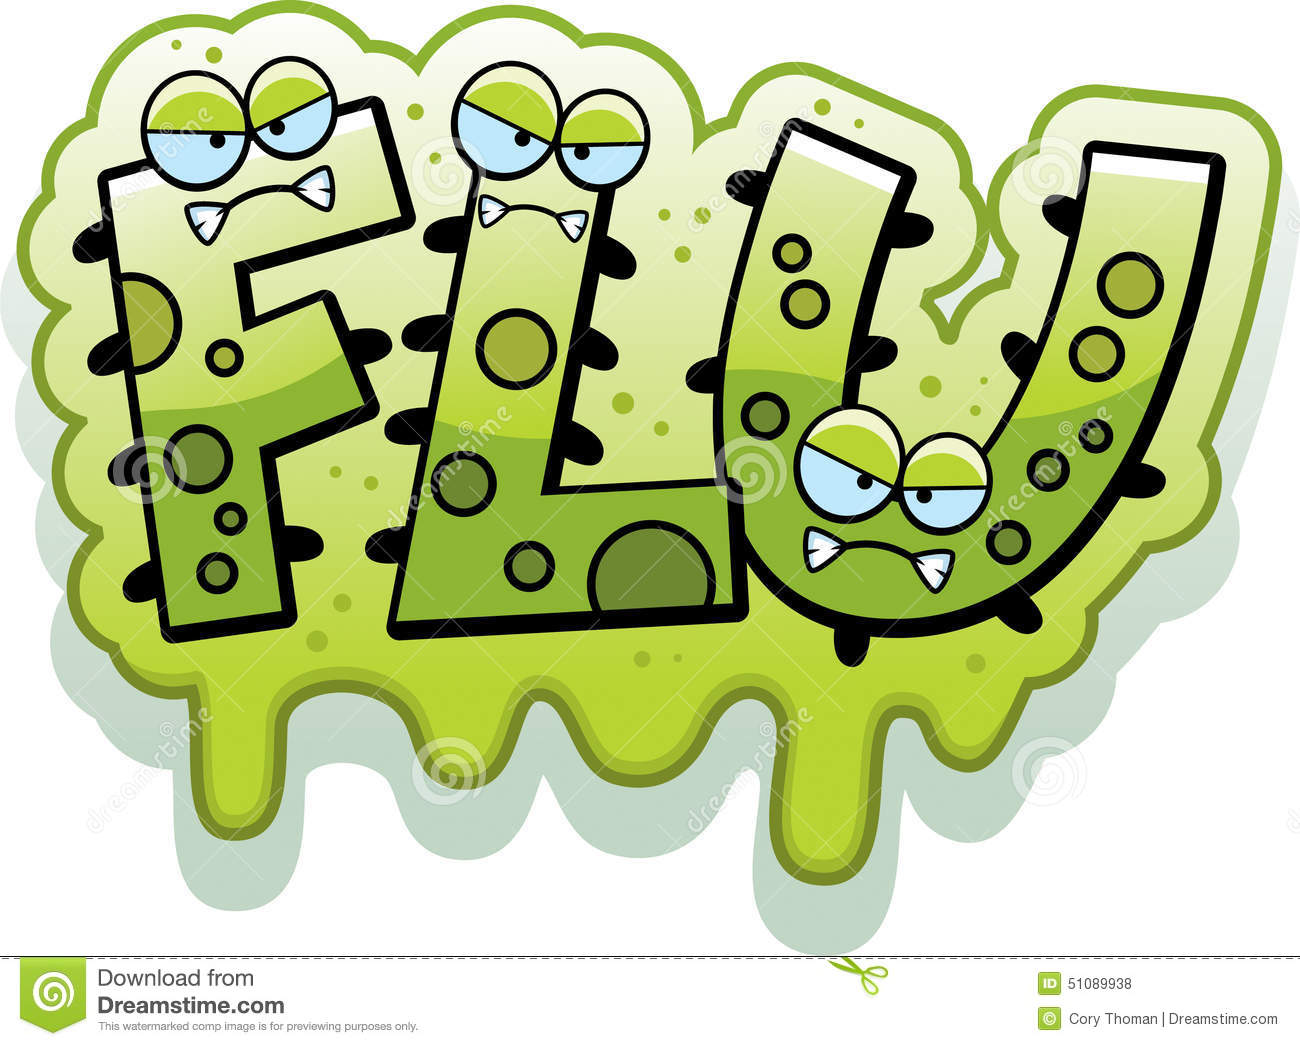 cartoon illustration of the text Flu with a slimy germ theme.